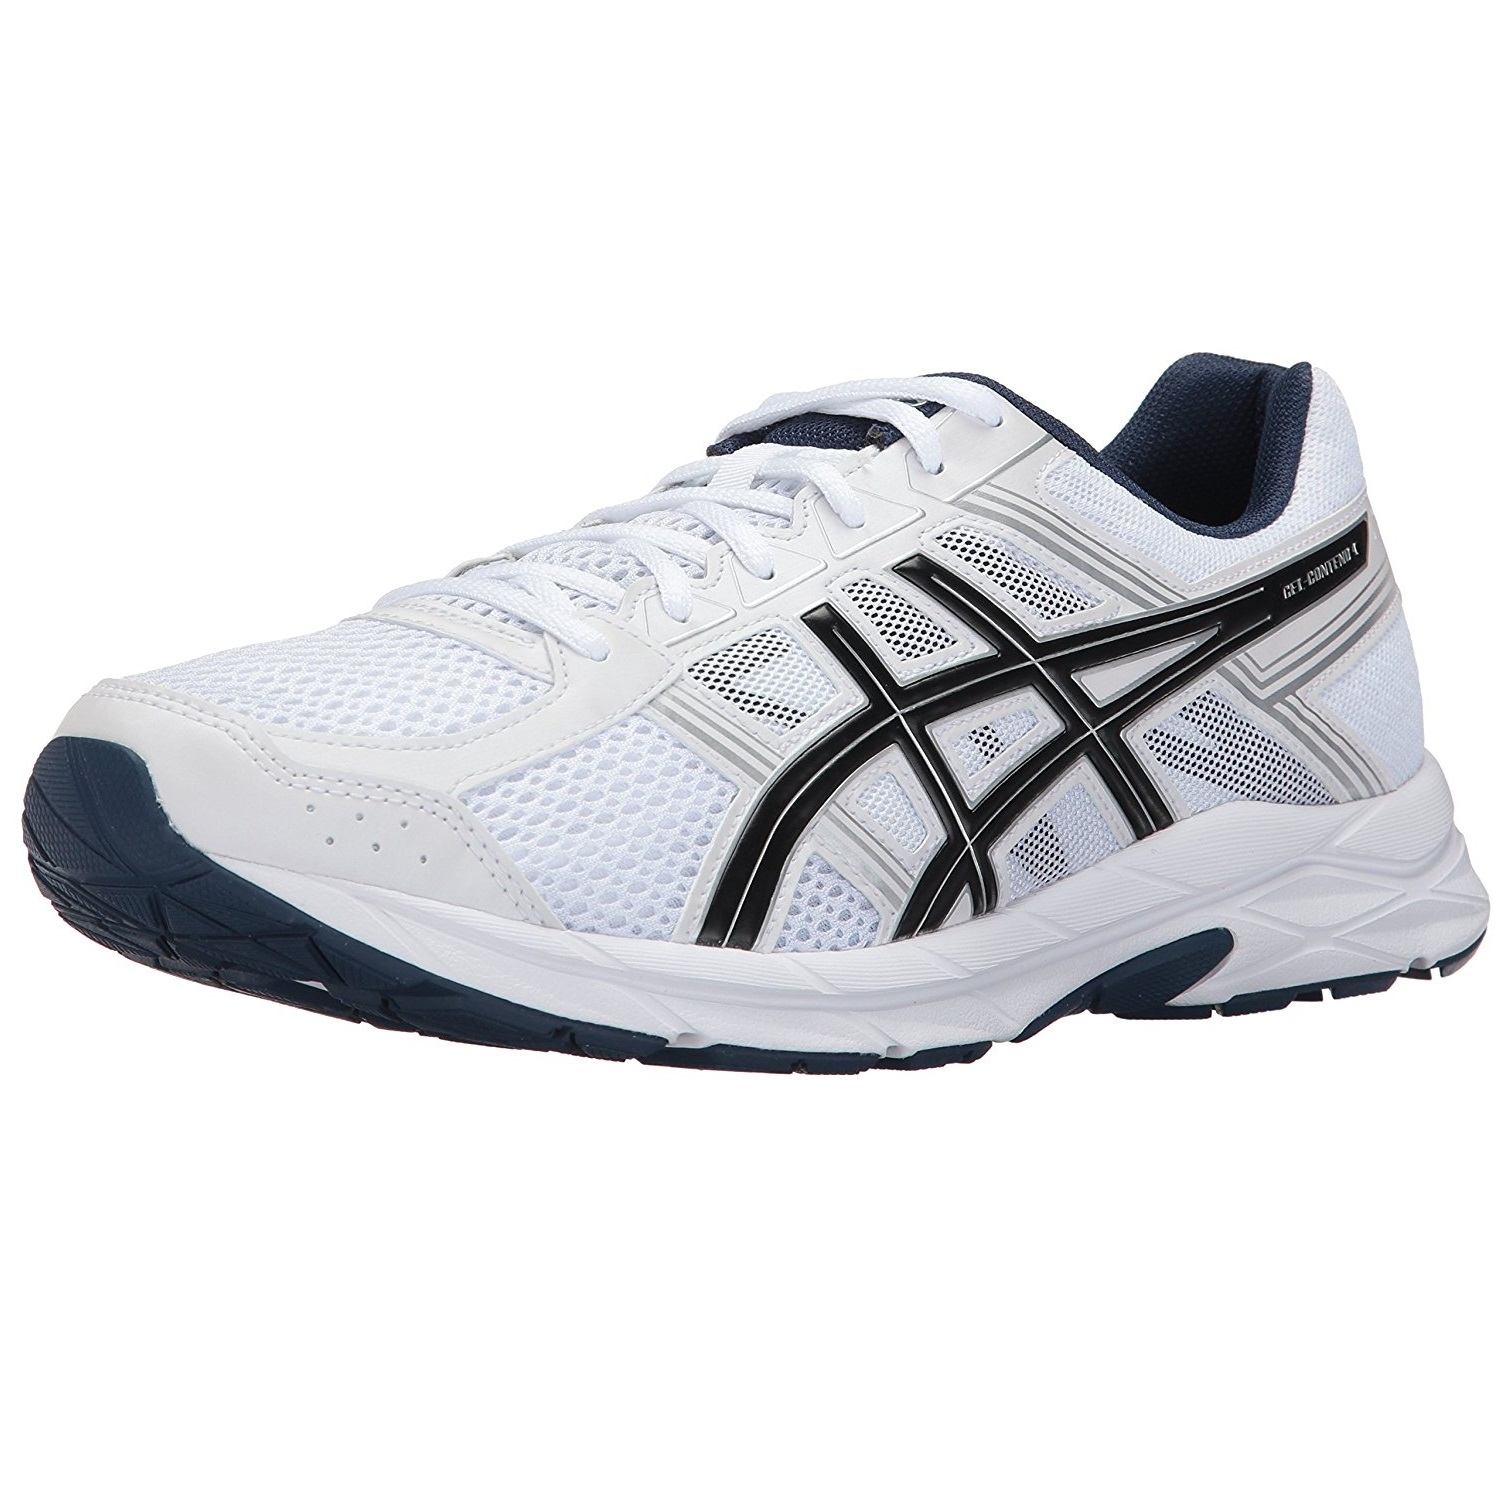 Asics Gel Contend 4: To Buy or Not in